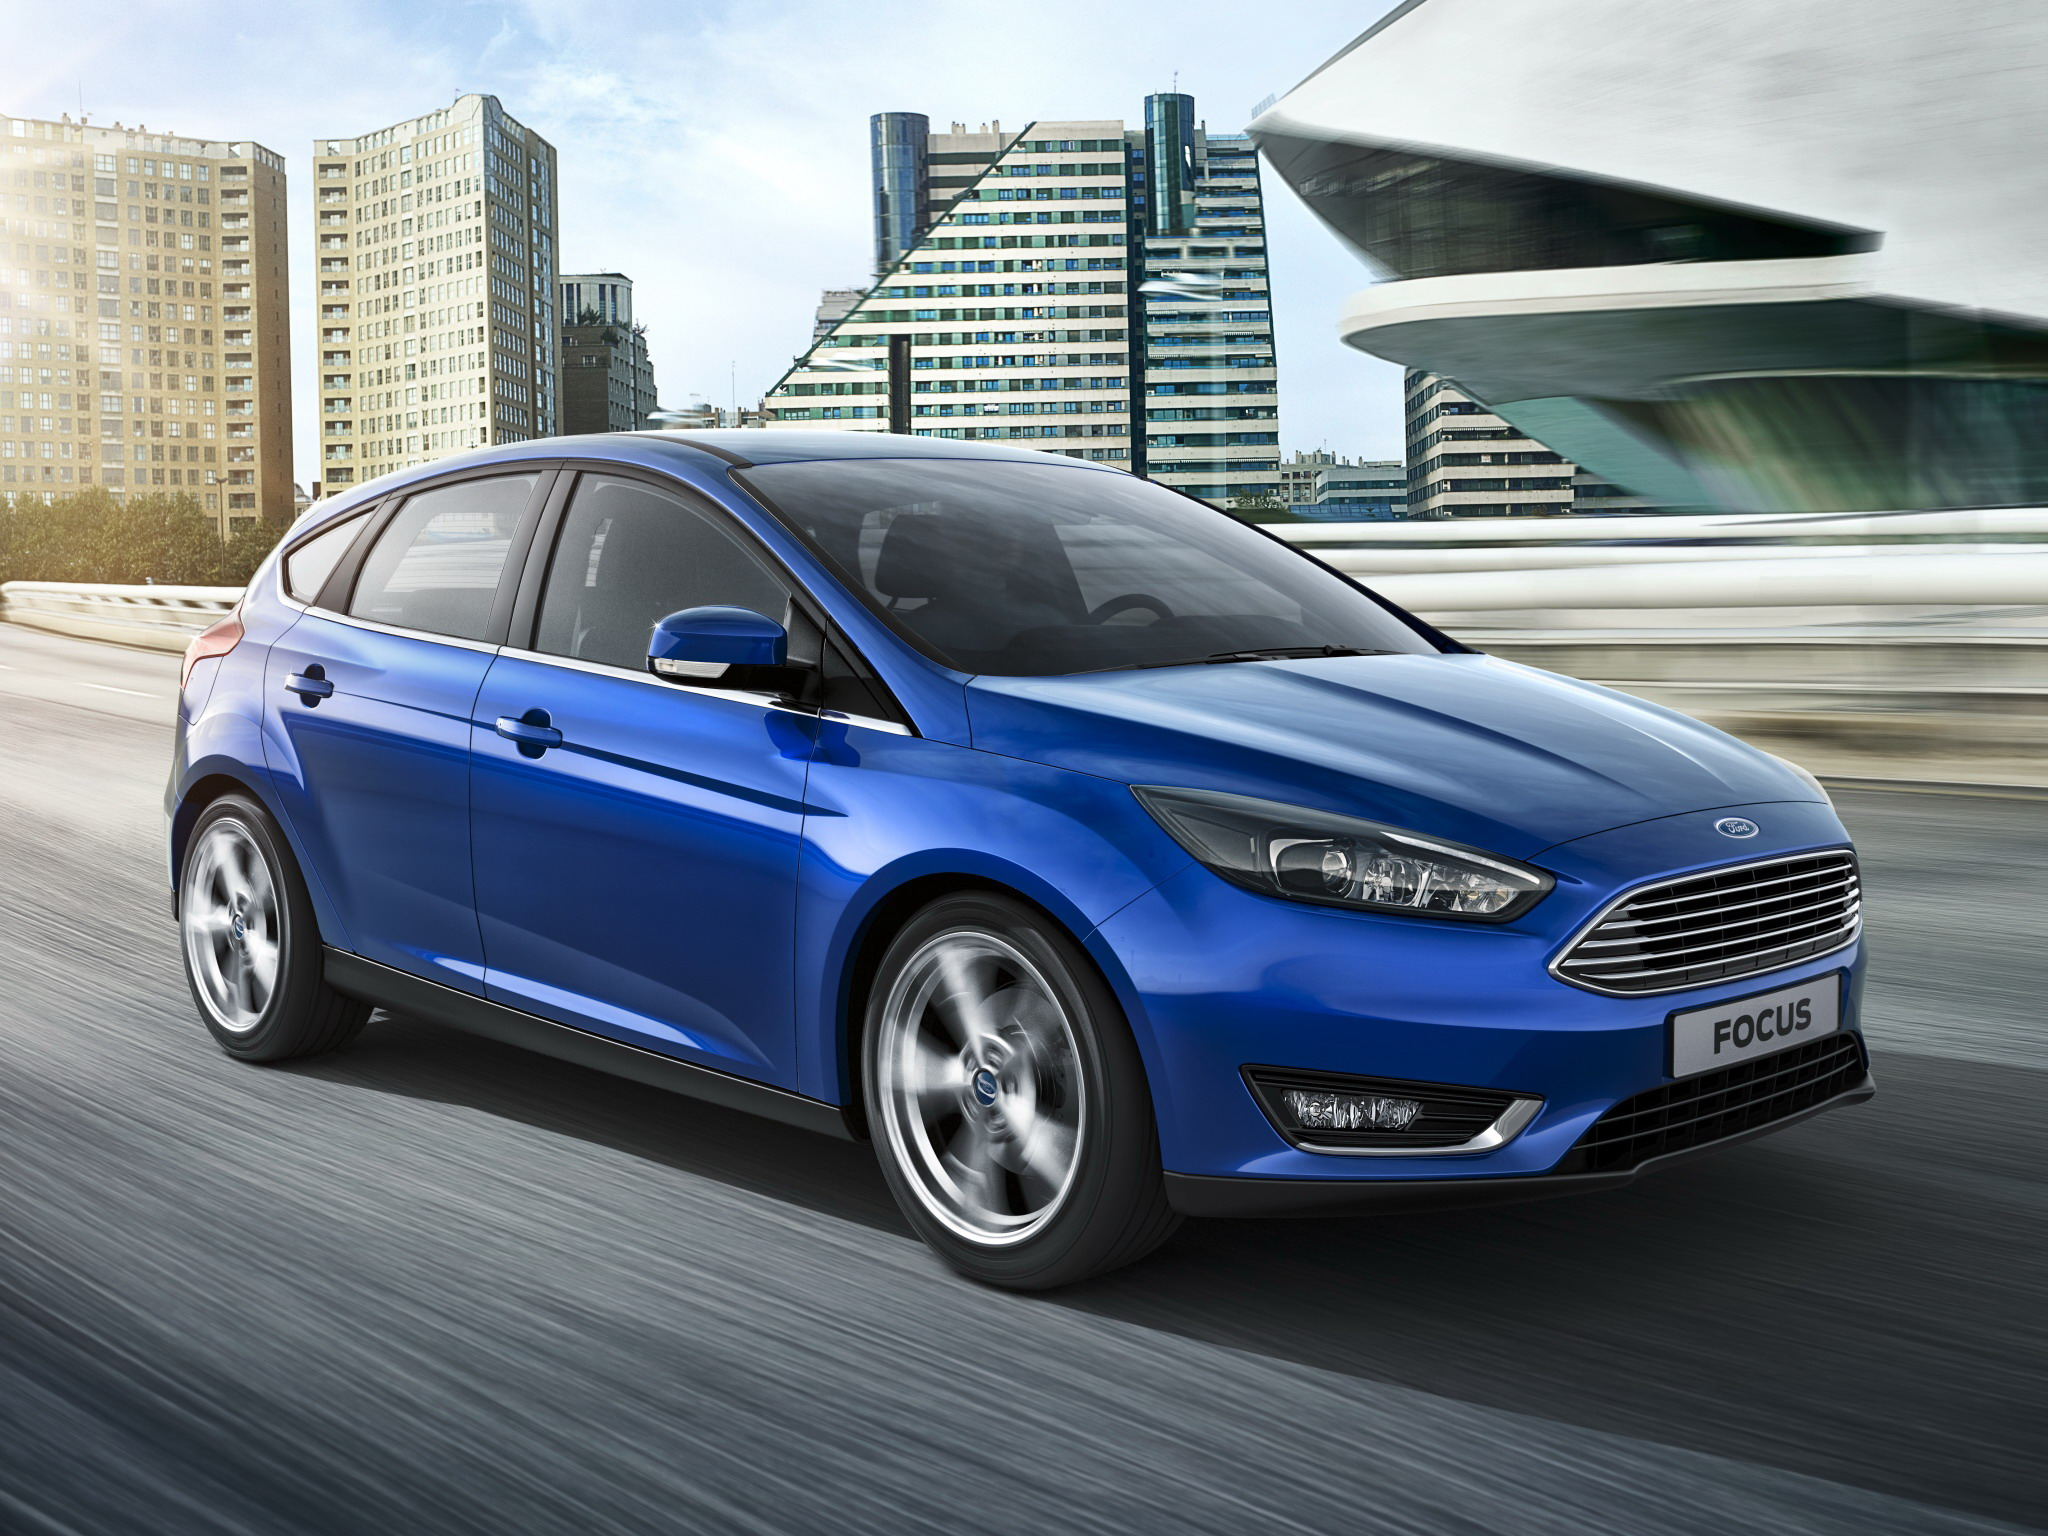 2015 ford focus review top speed. Black Bedroom Furniture Sets. Home Design Ideas